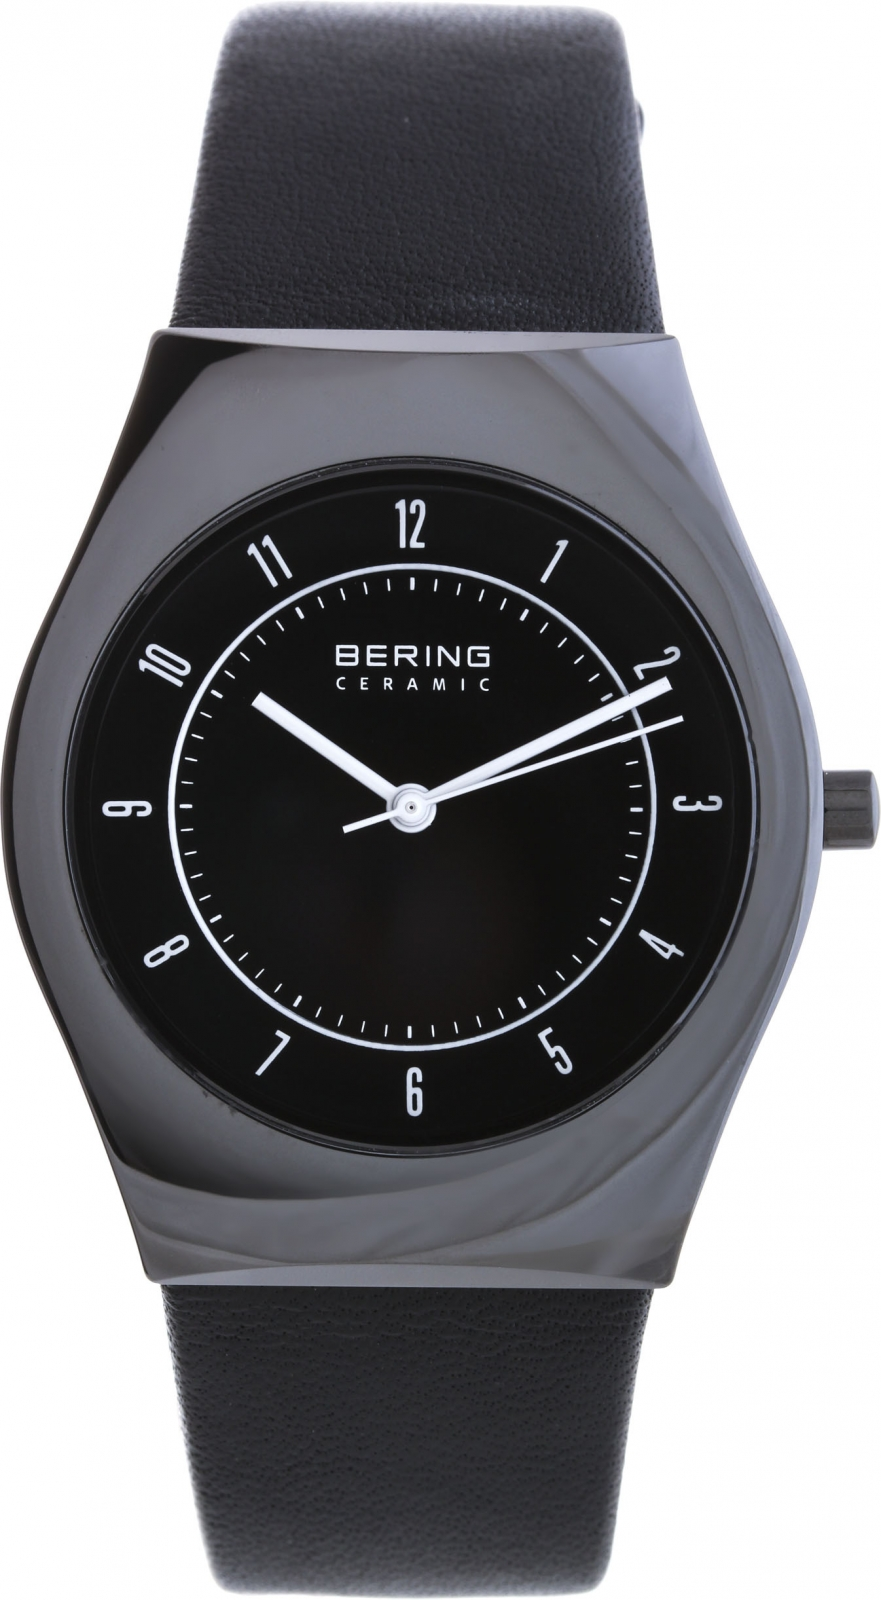 Bering Ceramic 32035-442 dispacci 32035